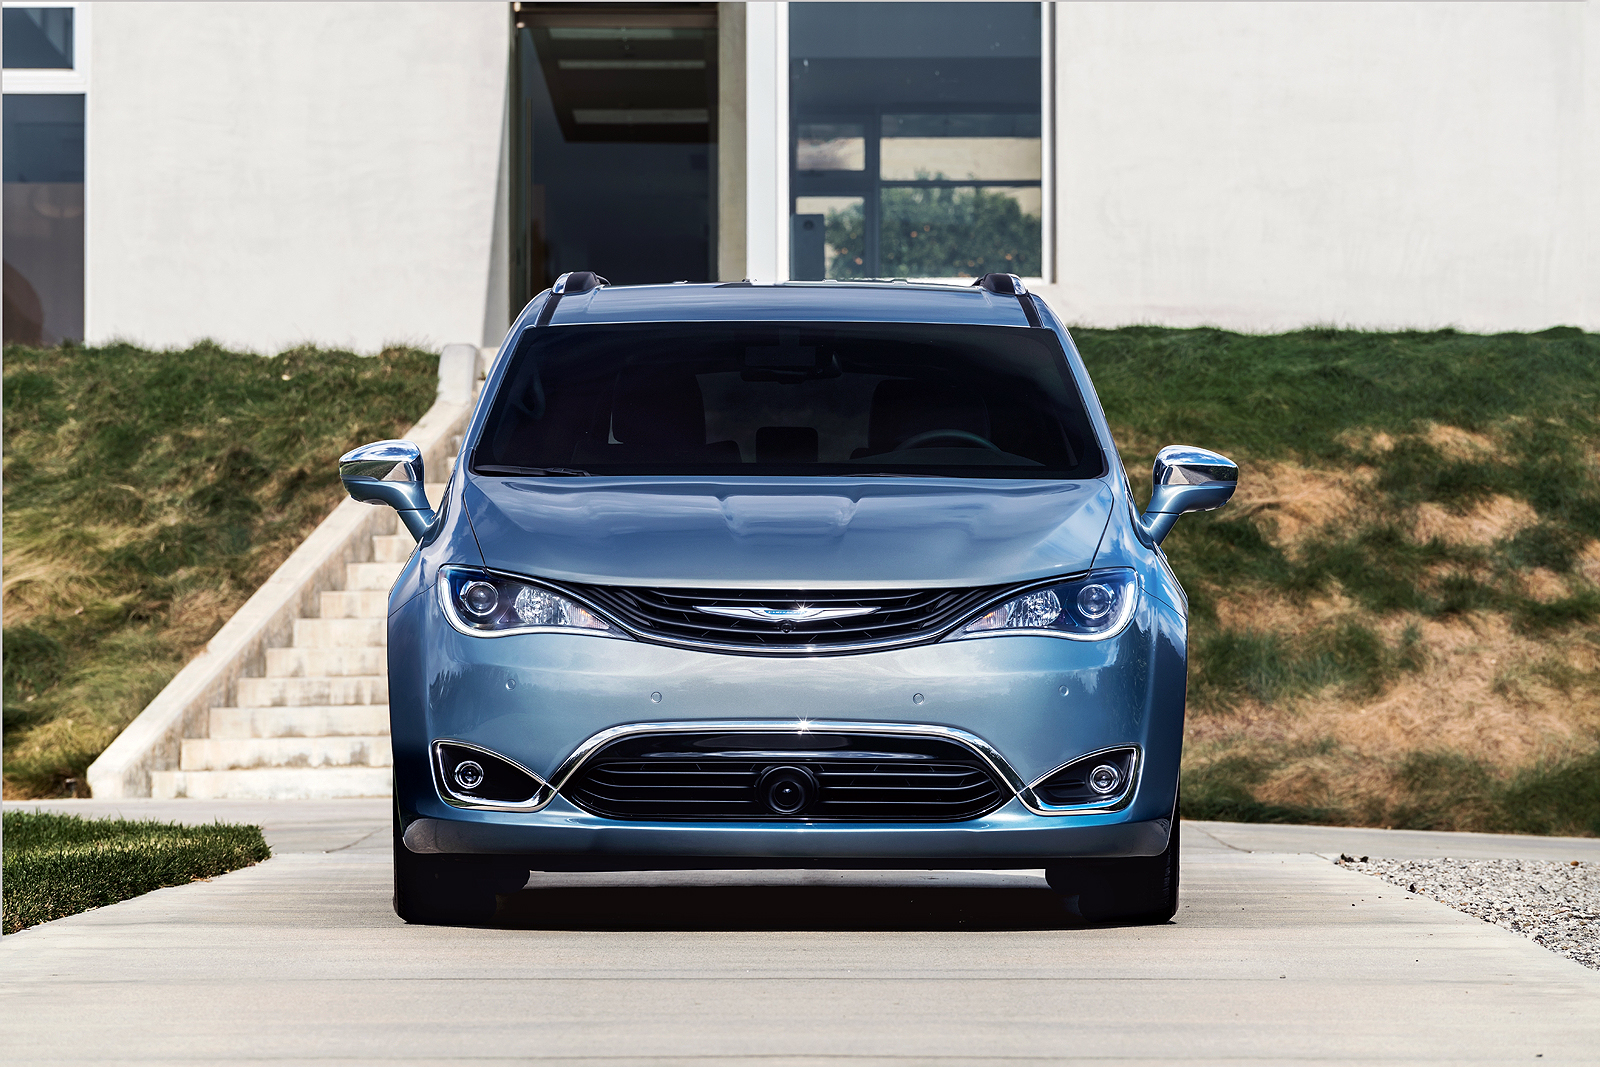 2017 chrysler pacifica hybrid carries steep price premium news. Black Bedroom Furniture Sets. Home Design Ideas